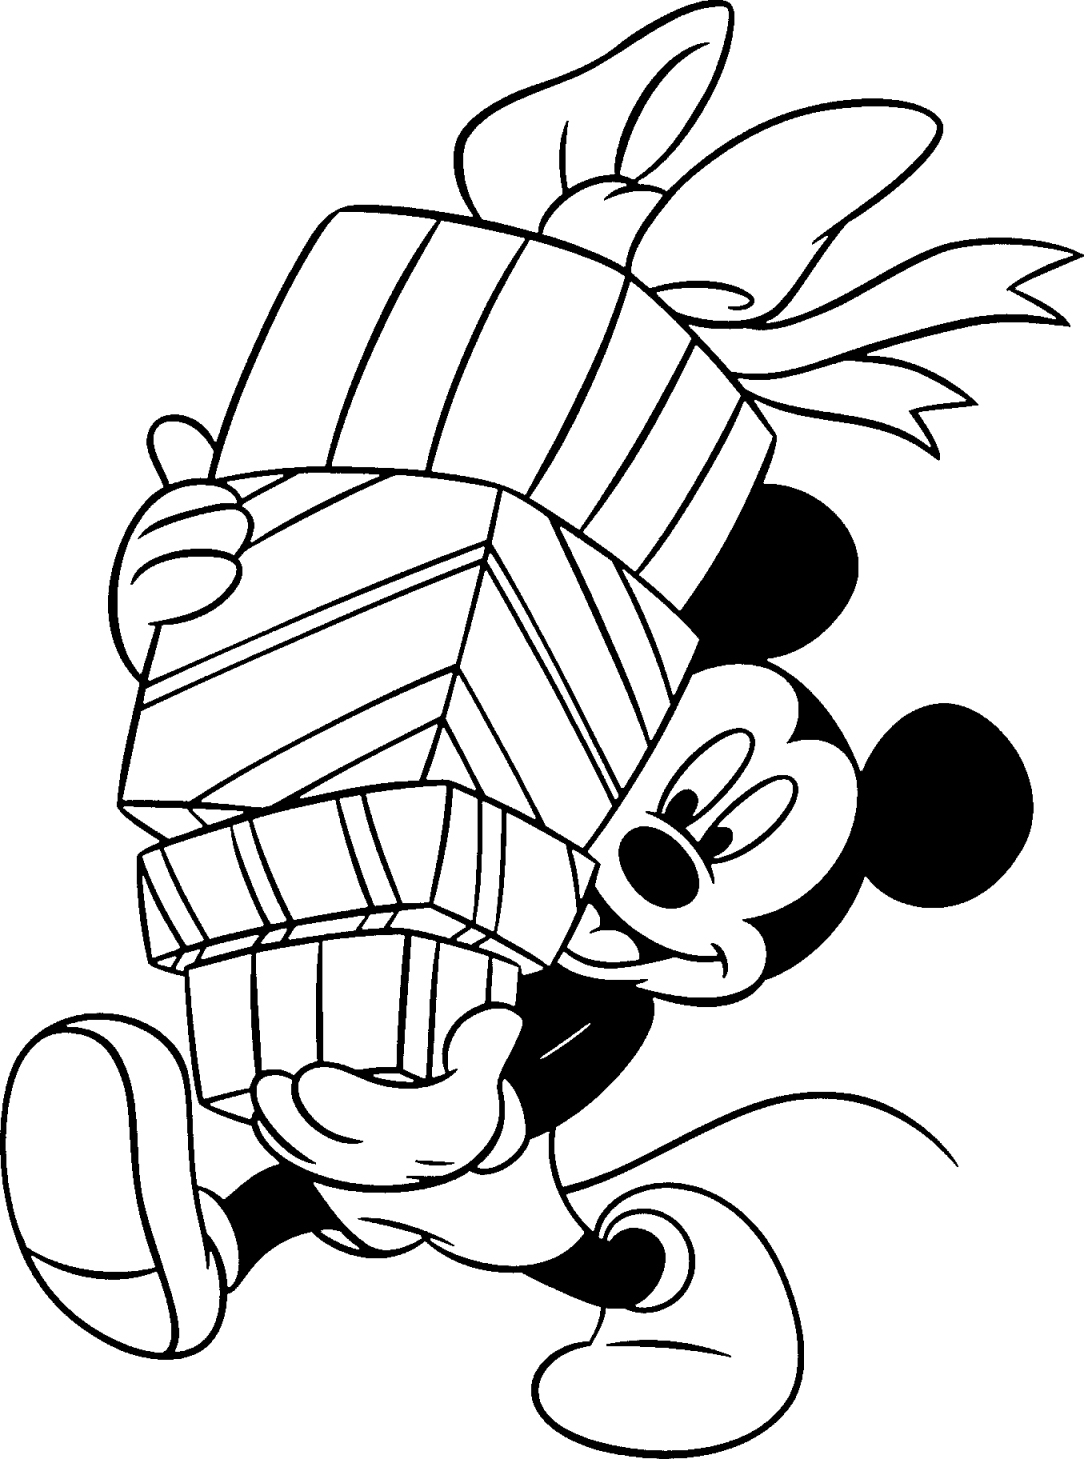 disney character coloring pages free printable colouring pages disney character disney pages coloring